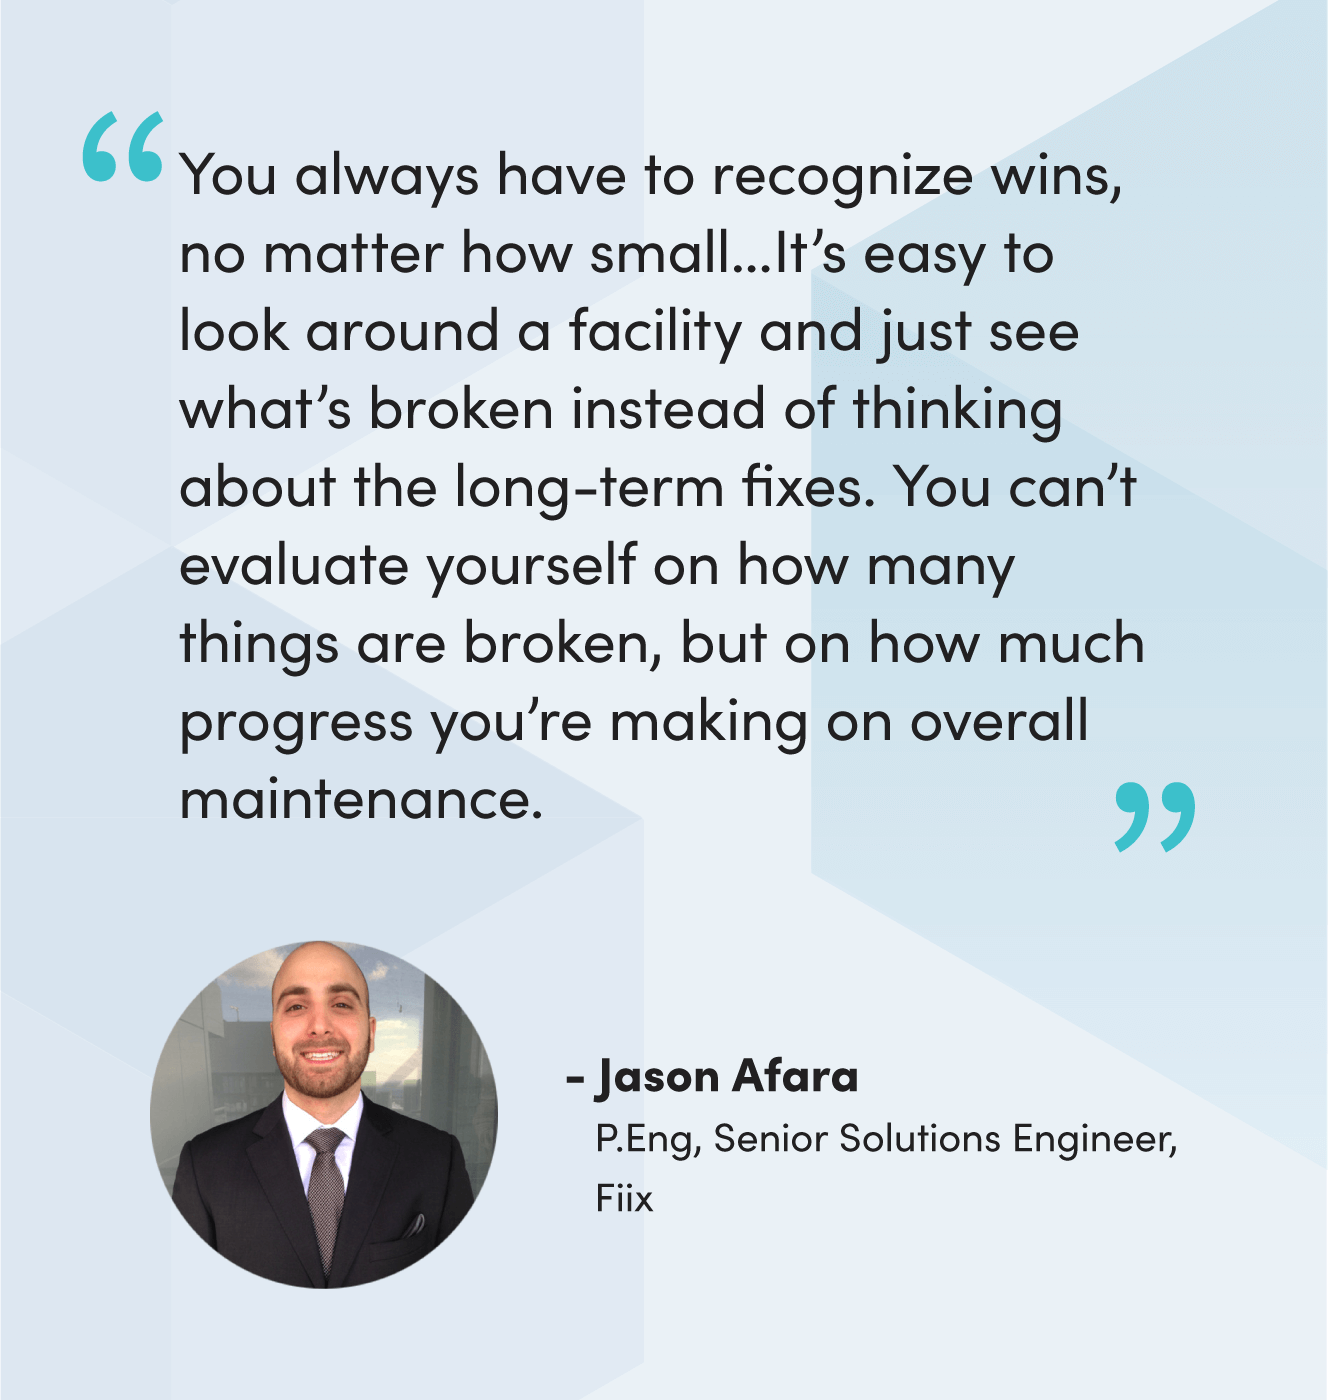 Quote from Jason Afara